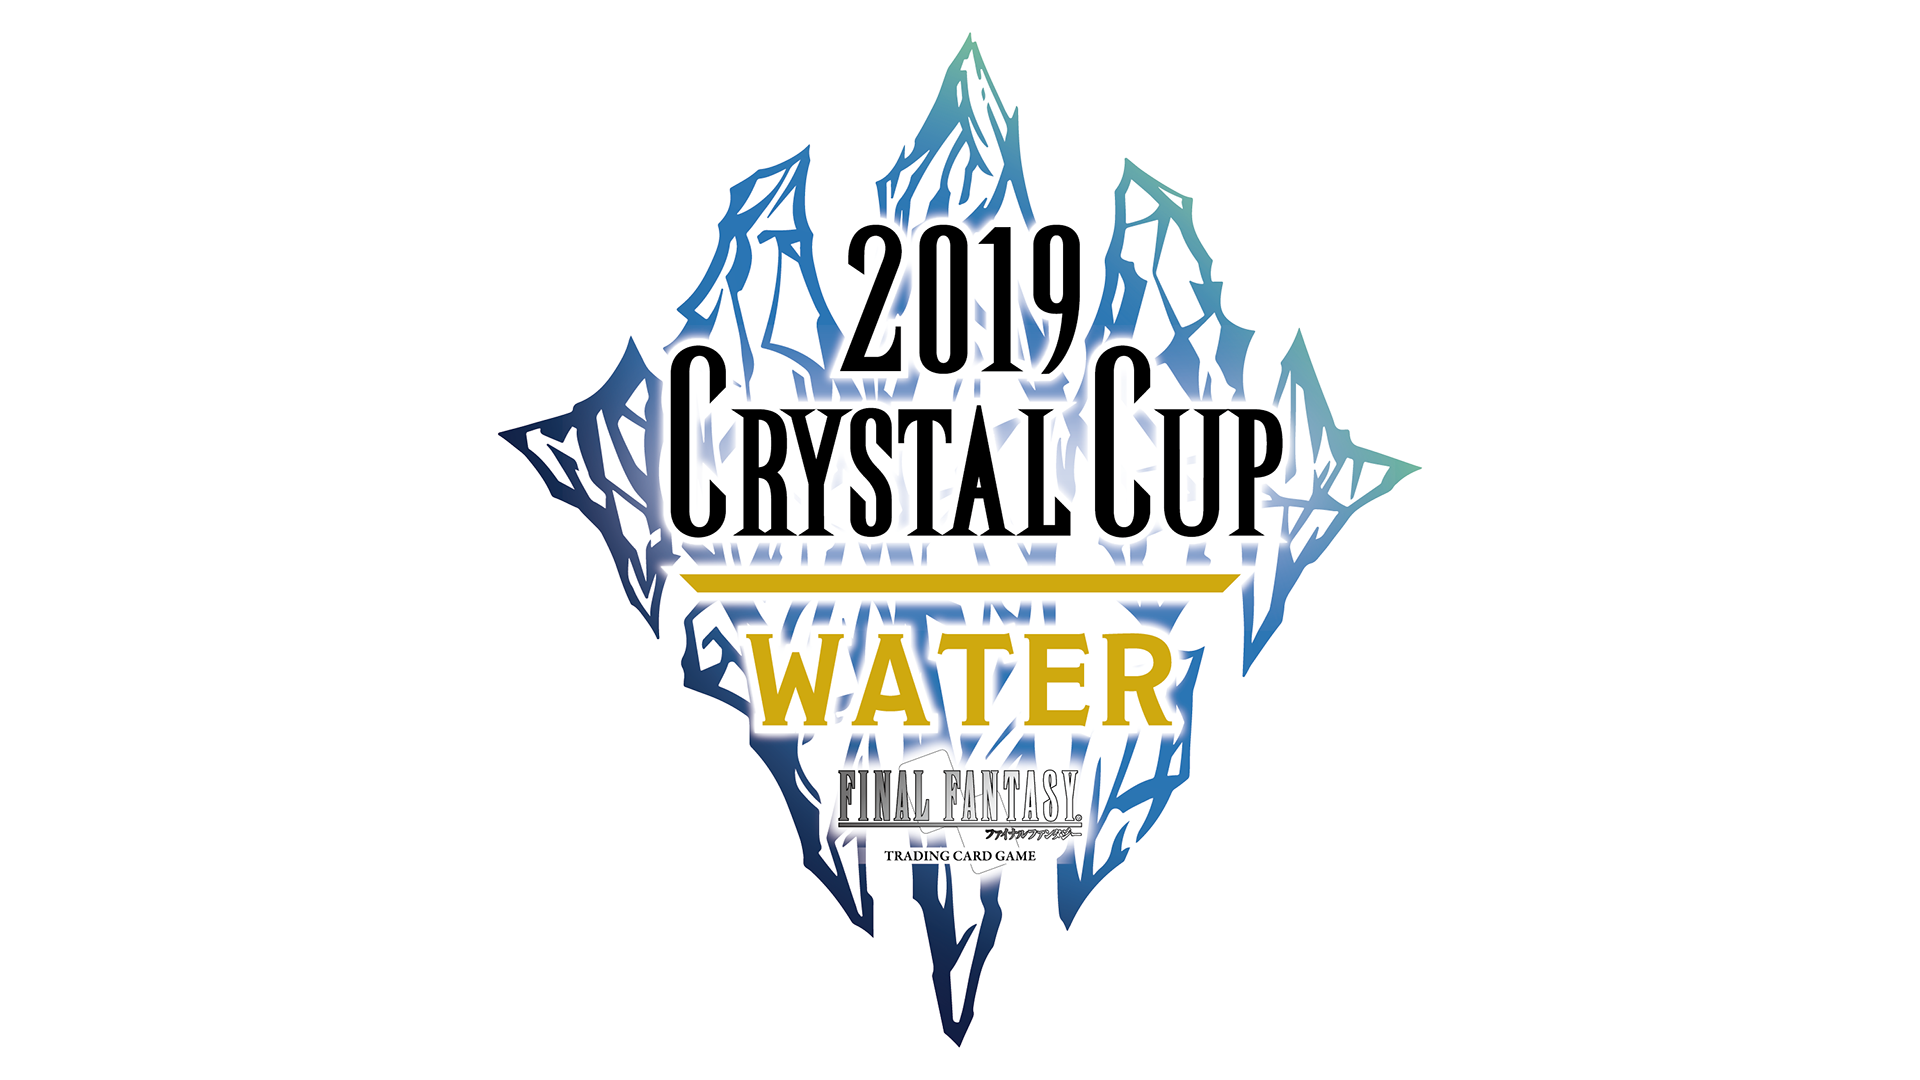 Regarding the decision made toward a player during the CRYSTAL CUP WATER Finals